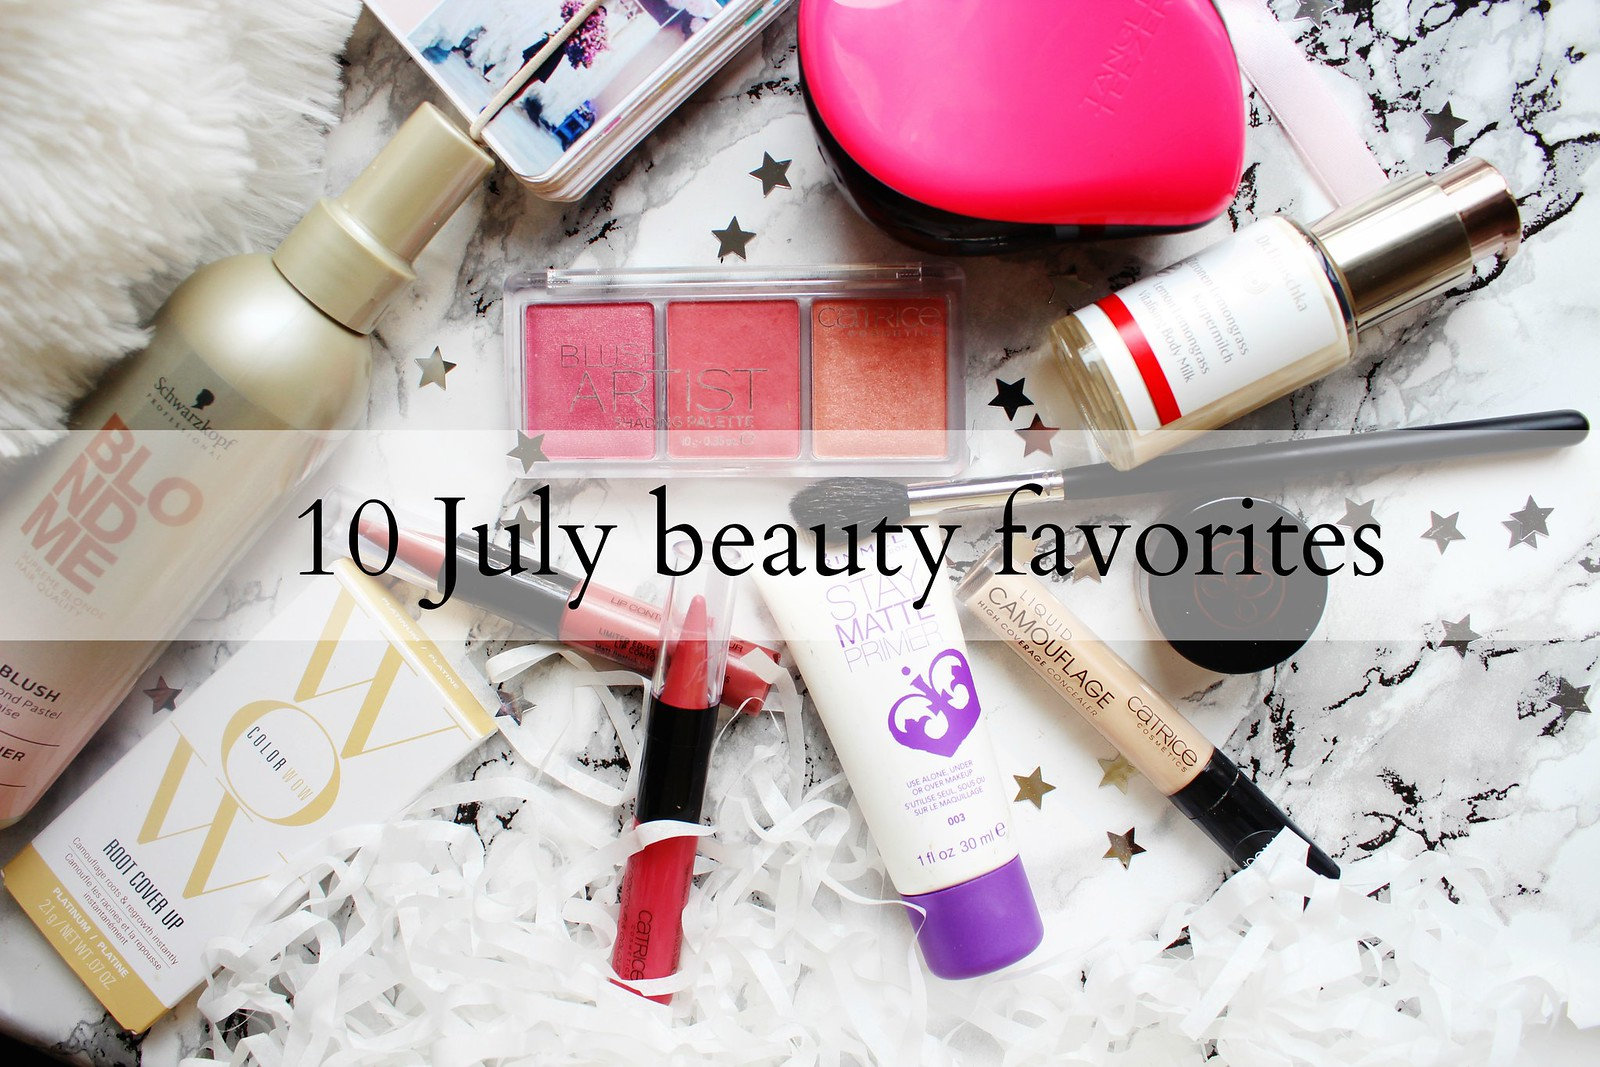 10 July beauty favorites